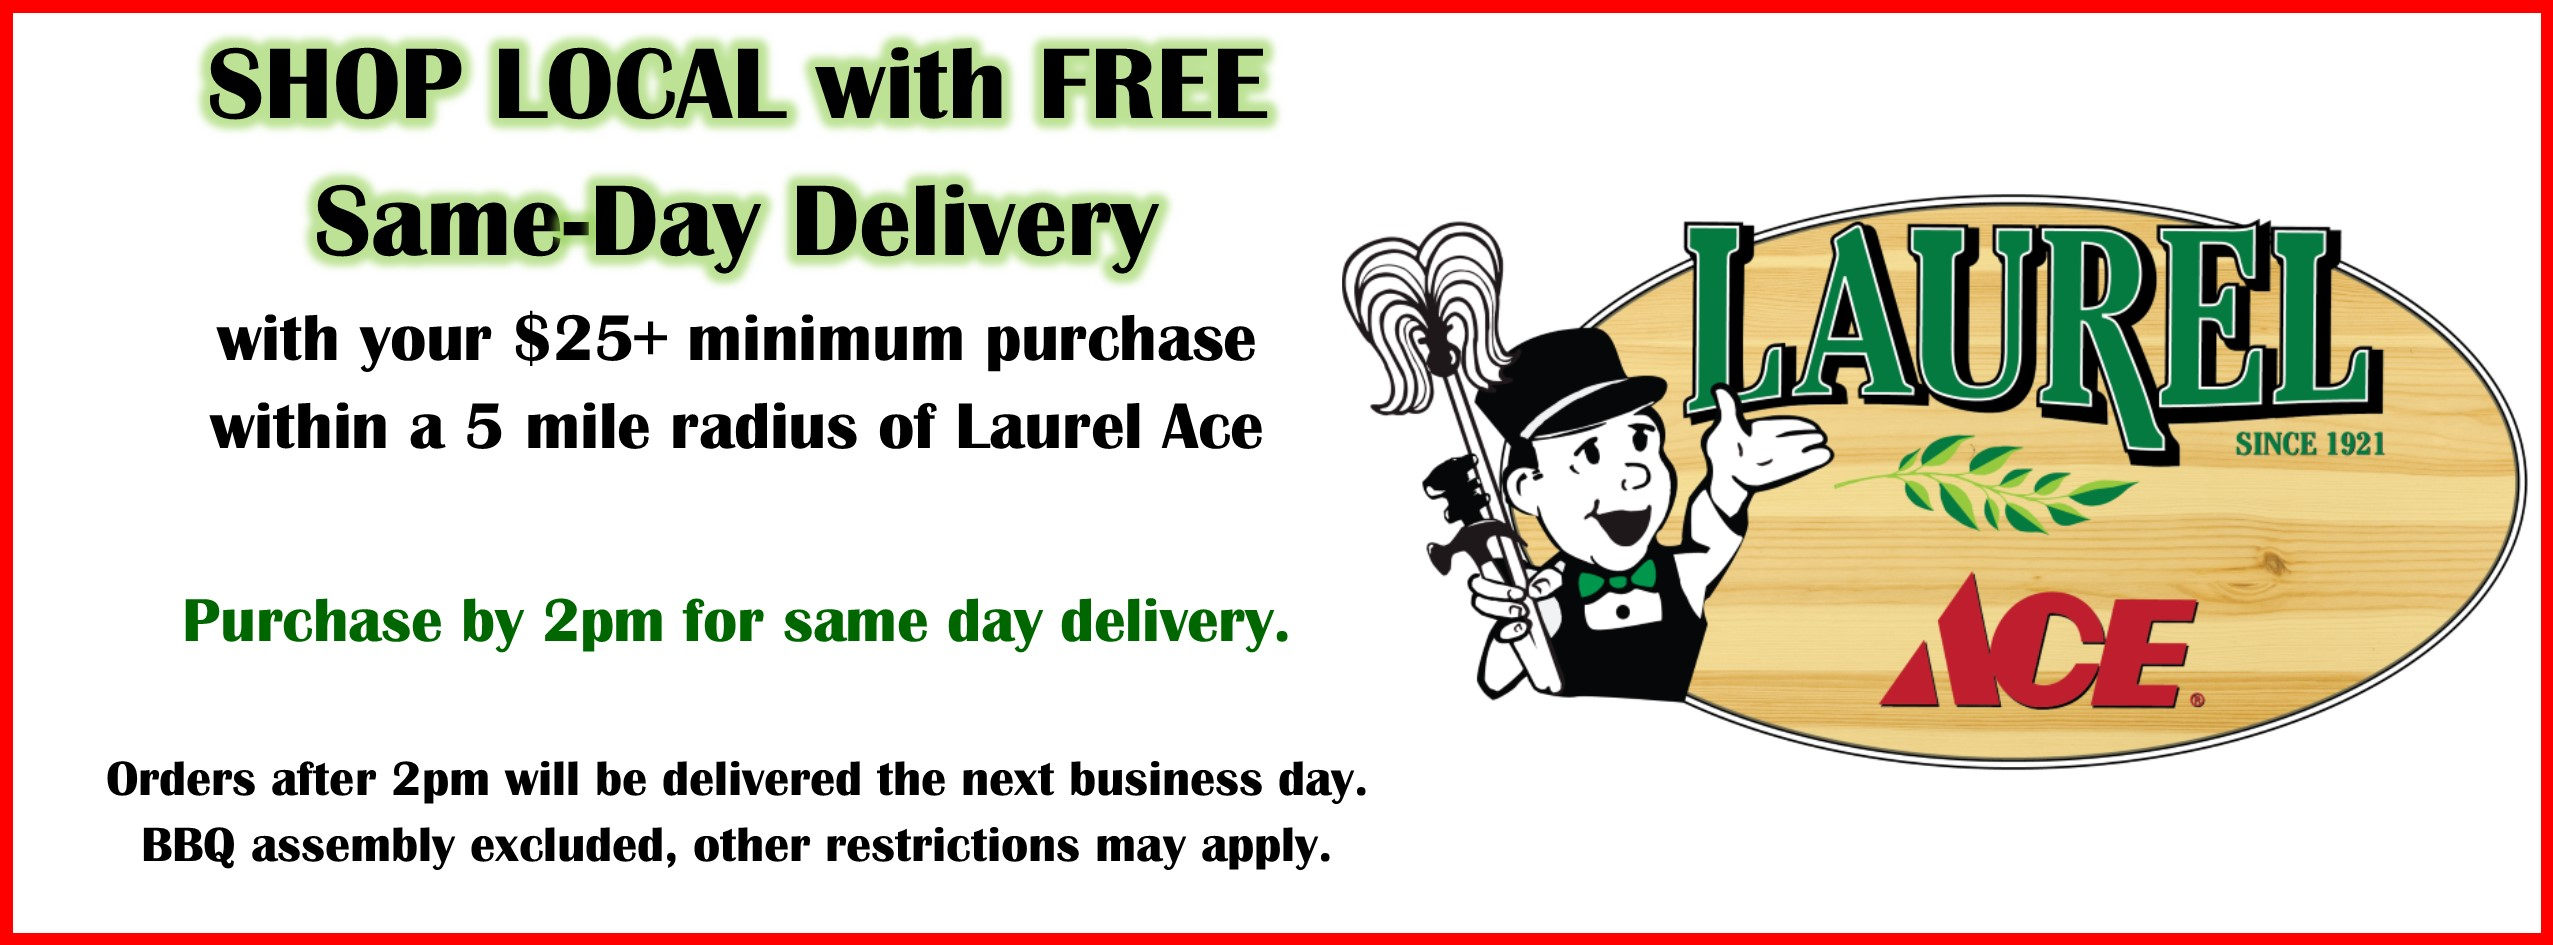 Same Day Delivery Laurel Ace